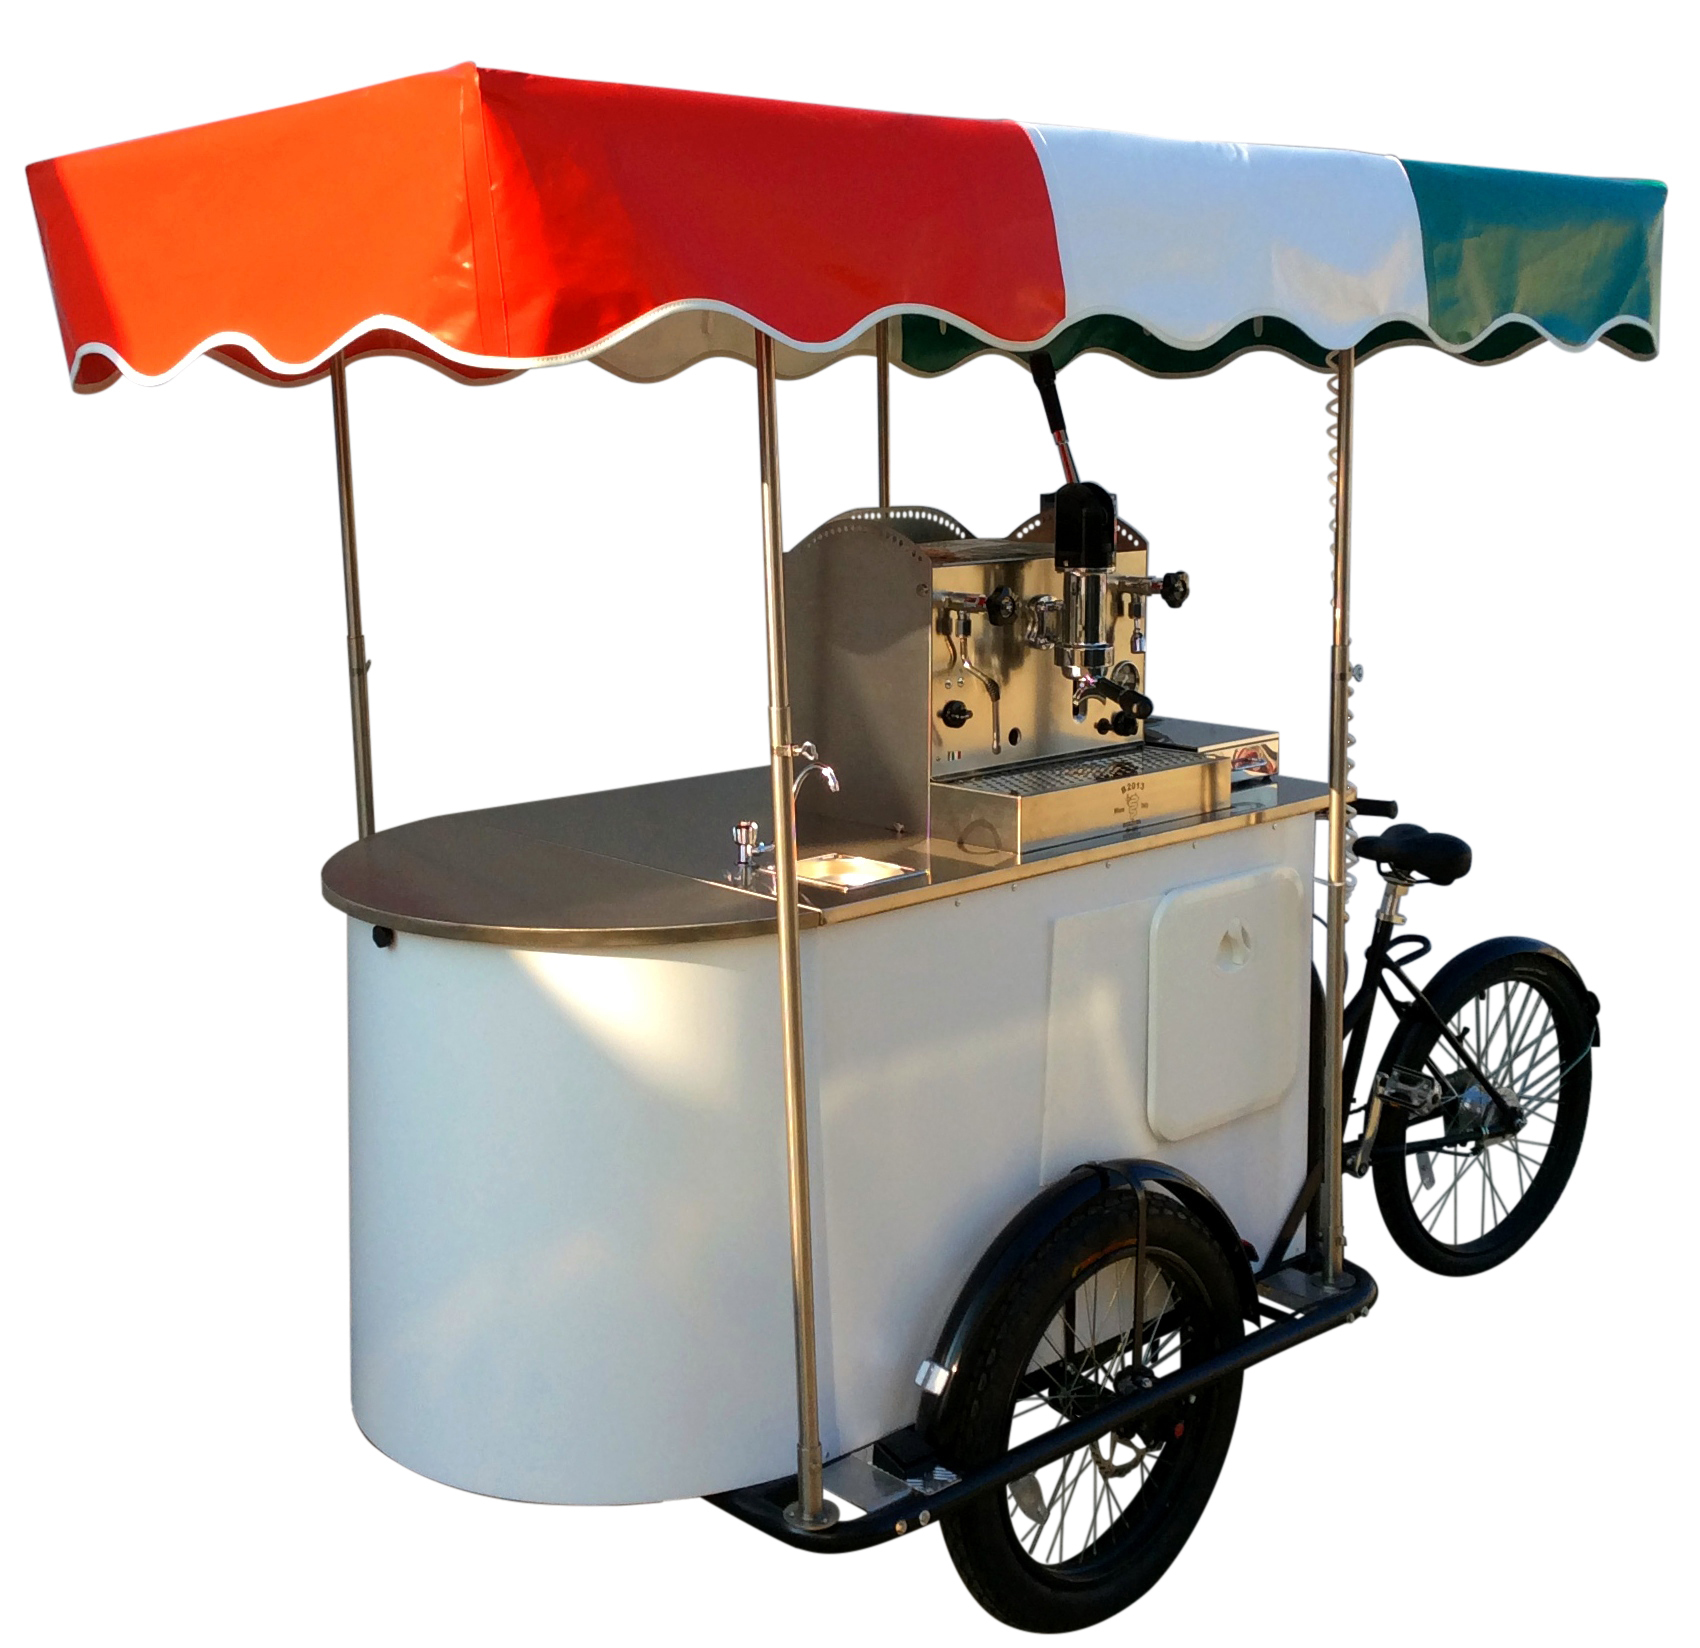 COFFEE_BIKE_CARGO_BIKE_CAFFETTERIA_AMBULANTE_MACCHINA_CAFFE_A_GAS_3